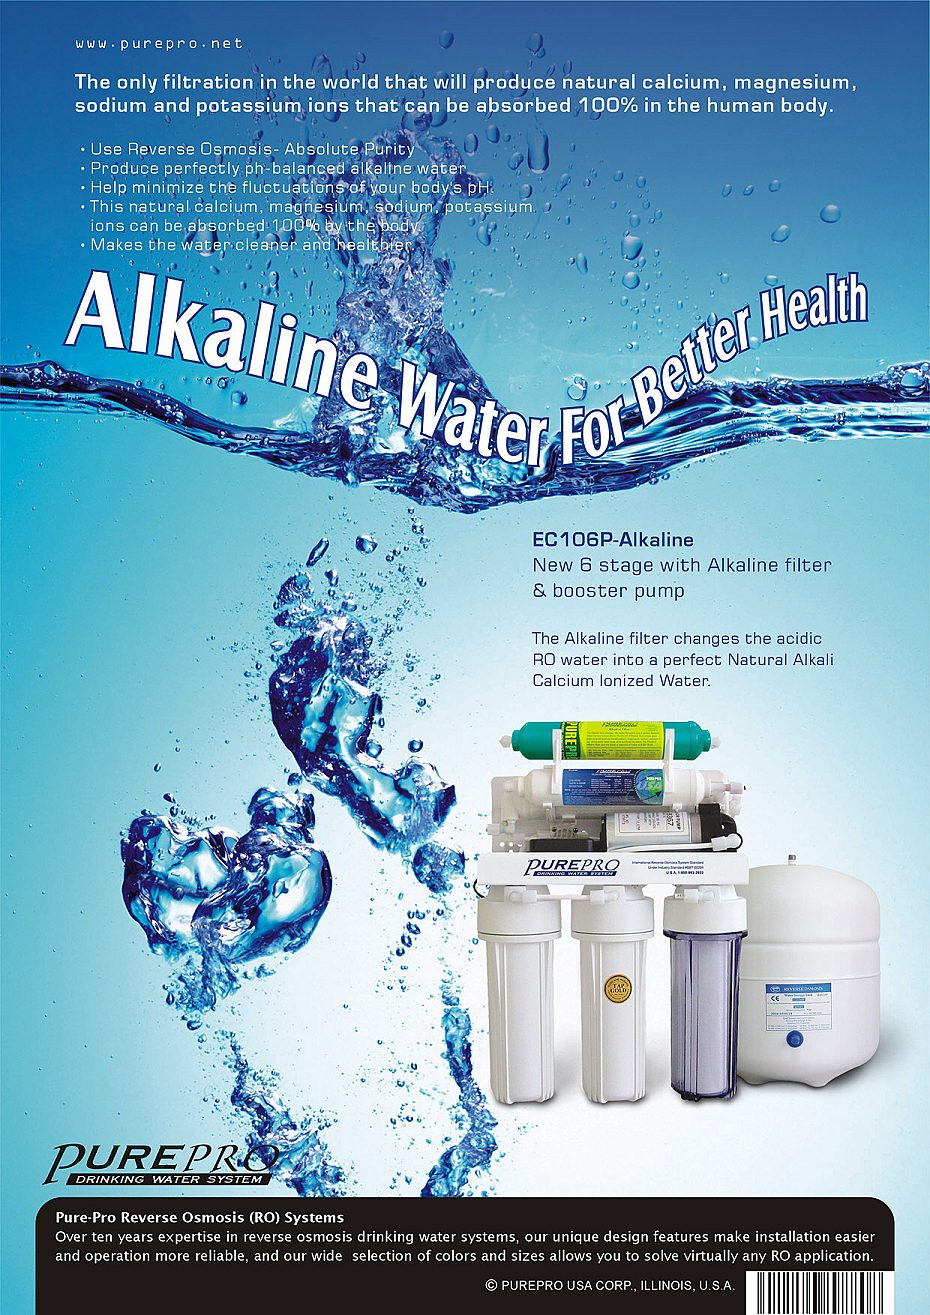 Purepro Alkaline Reverse Osmosis Water Filter Systems